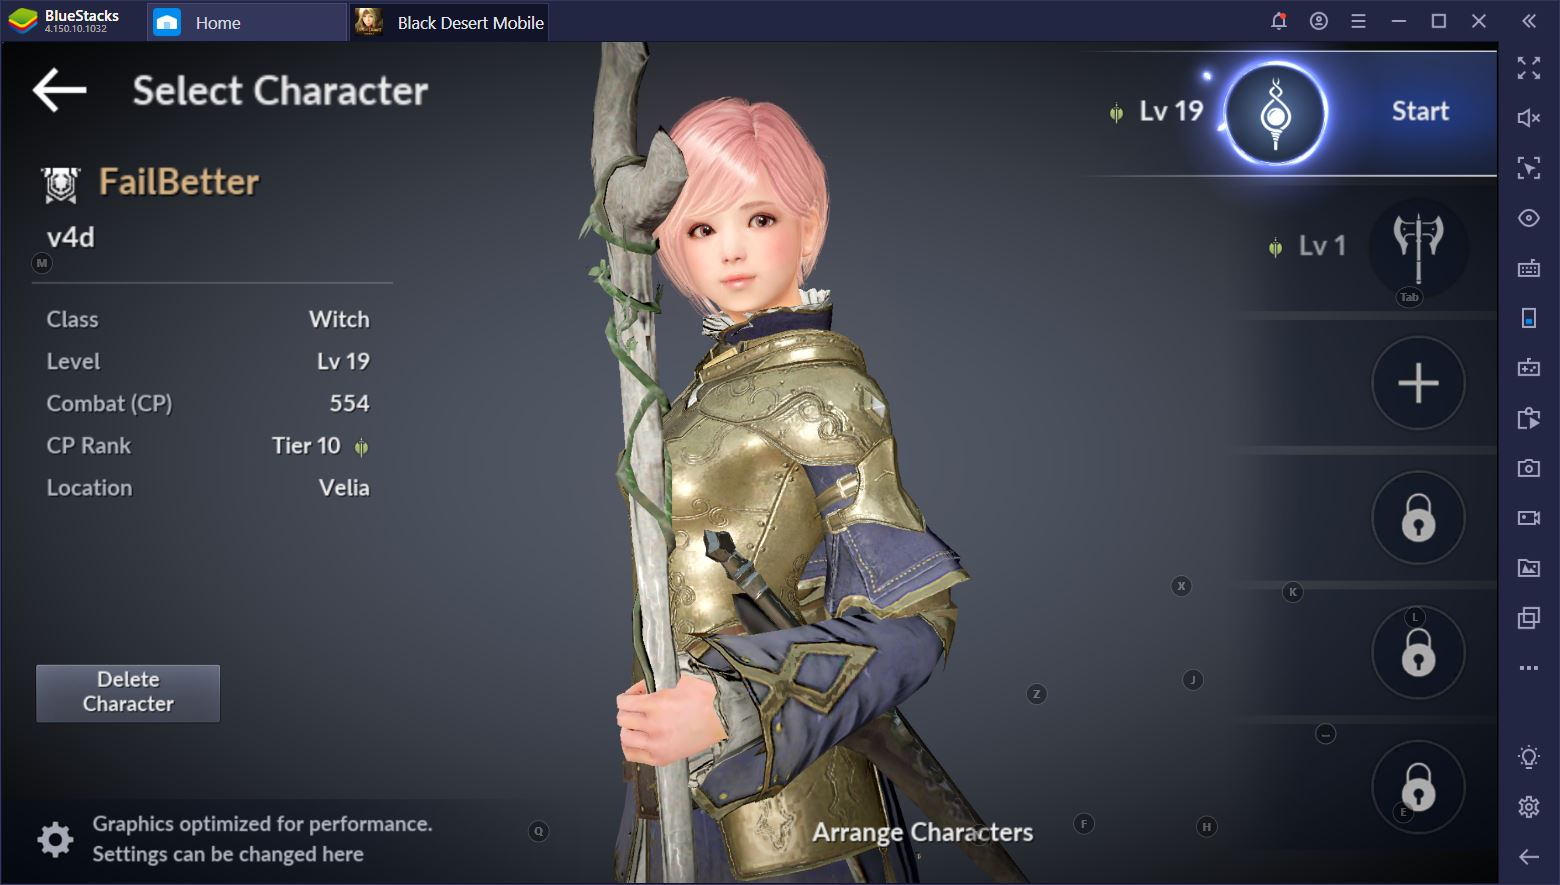 Black Desert Mobile: How to Level Up Quickly